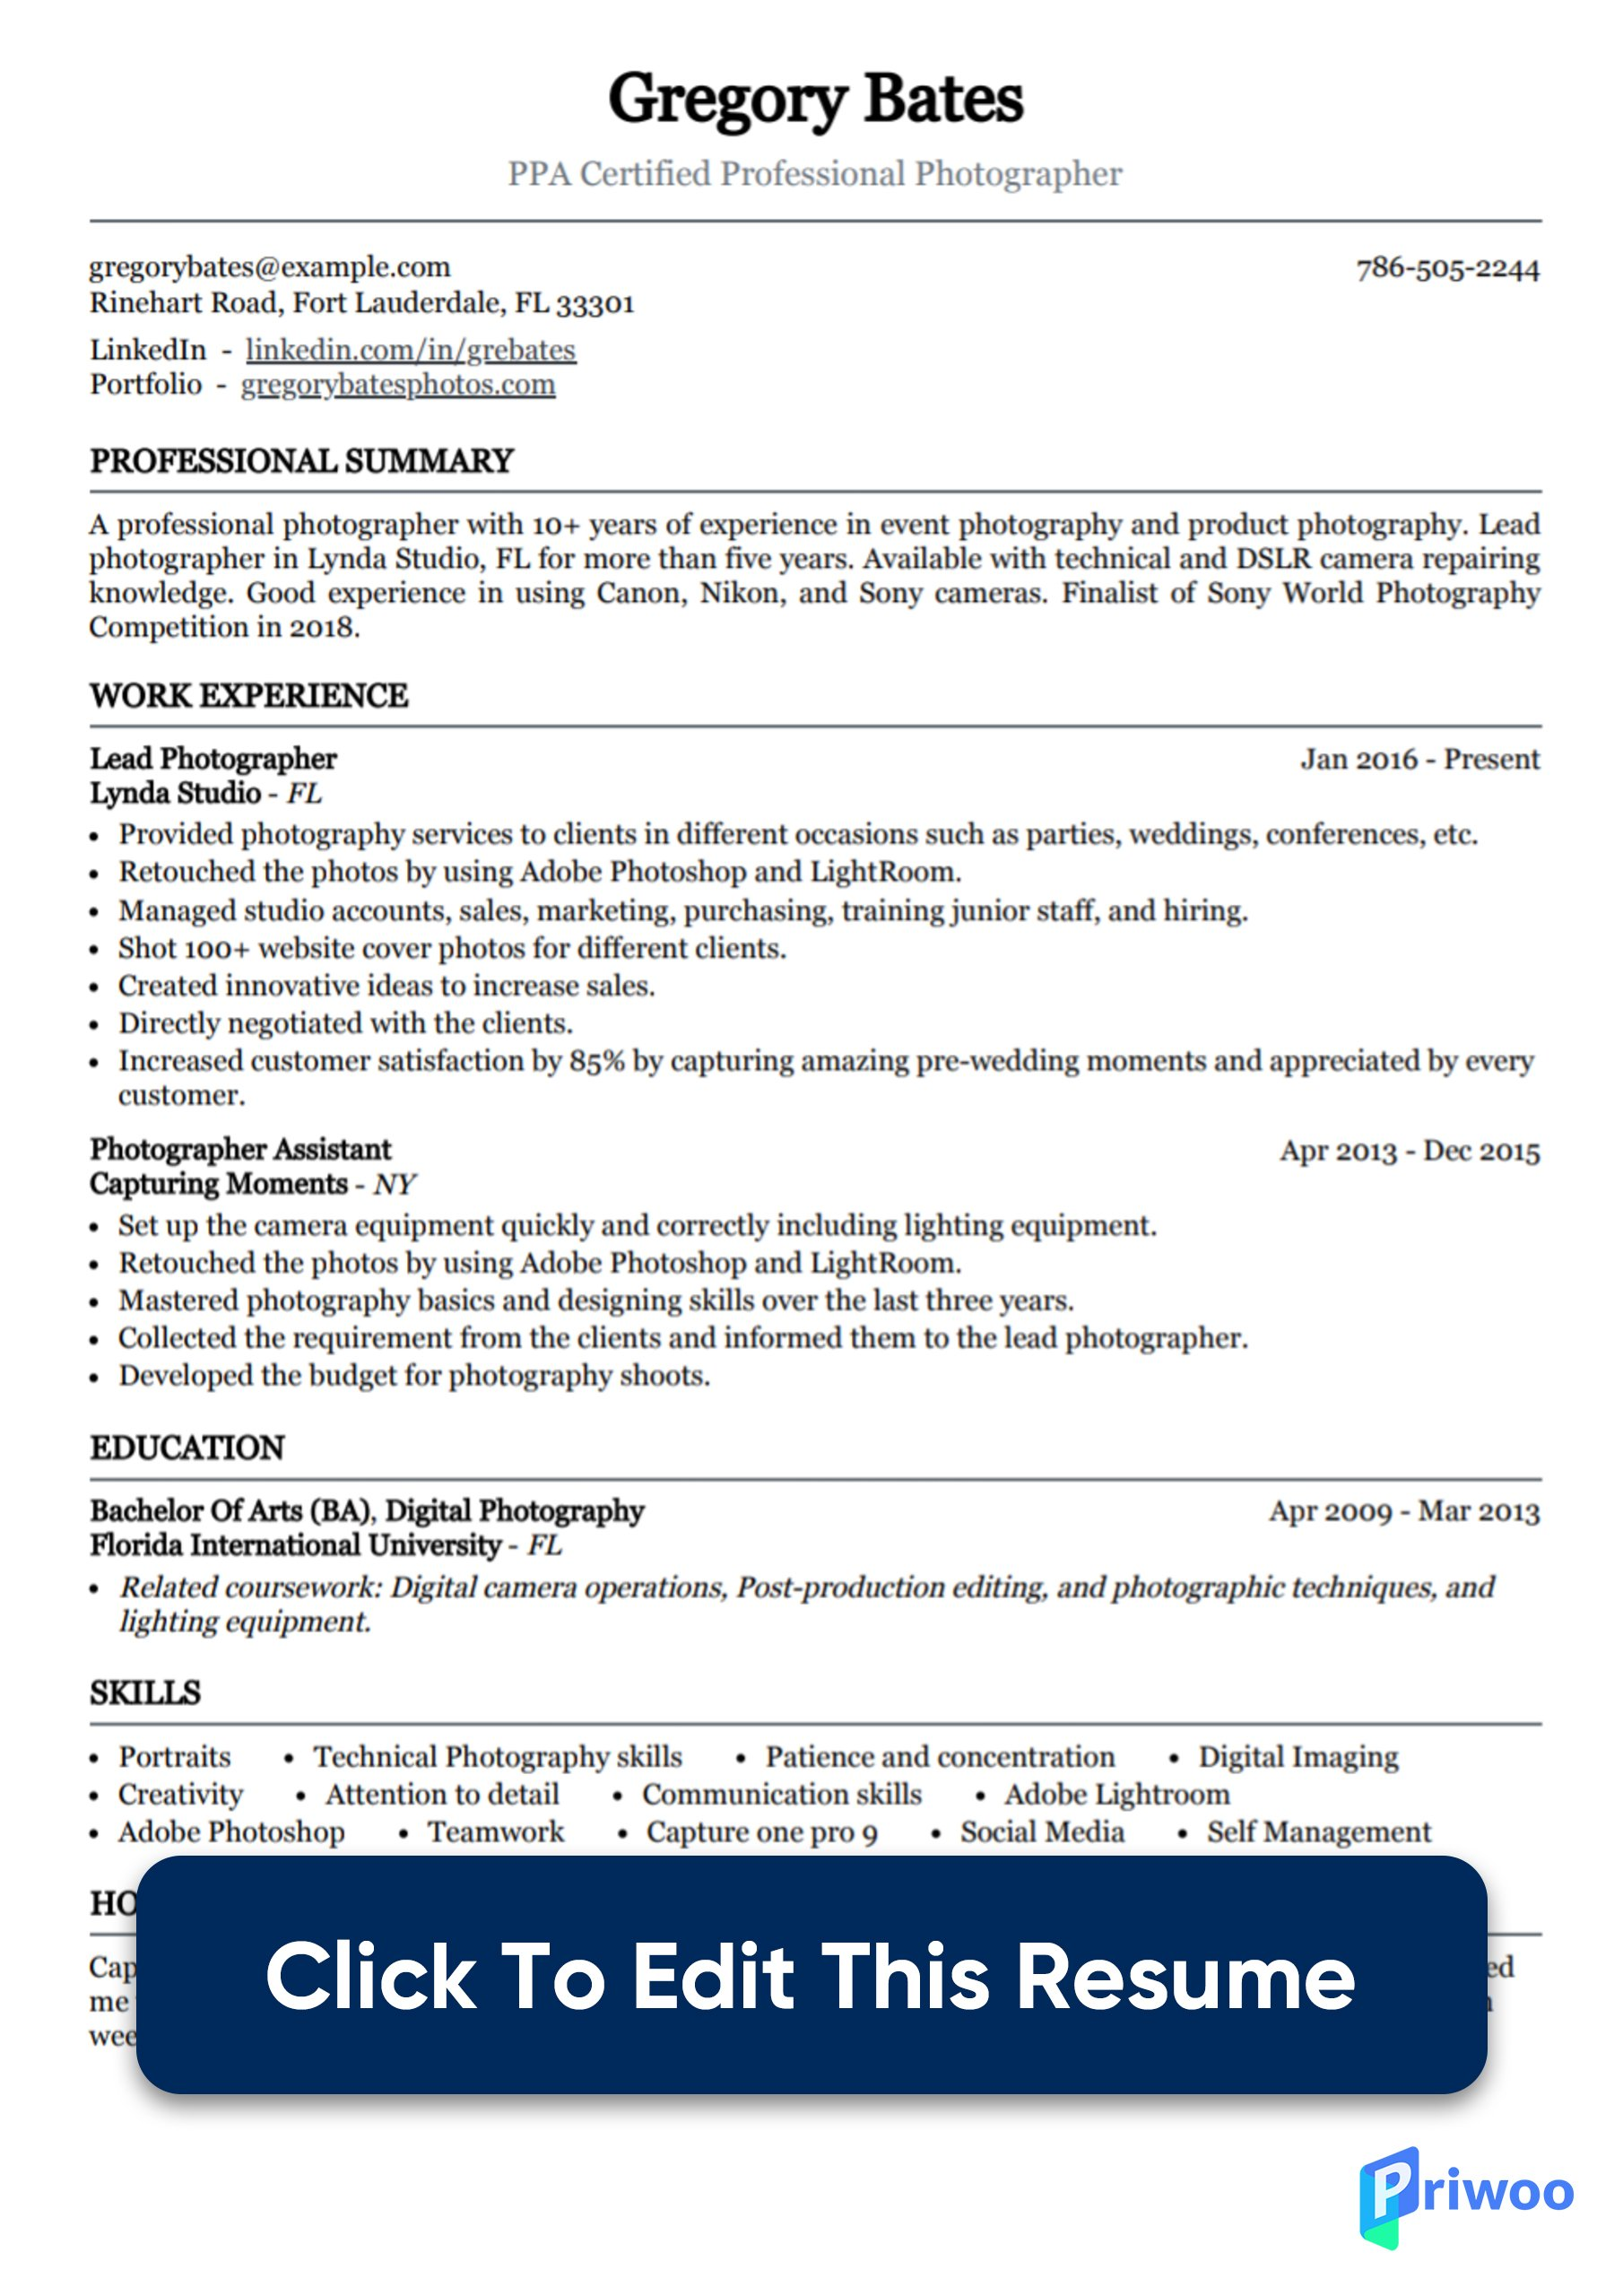 photographer resume example with photography tips priwoo for beginners sample medical Resume Photography Resume For Beginners